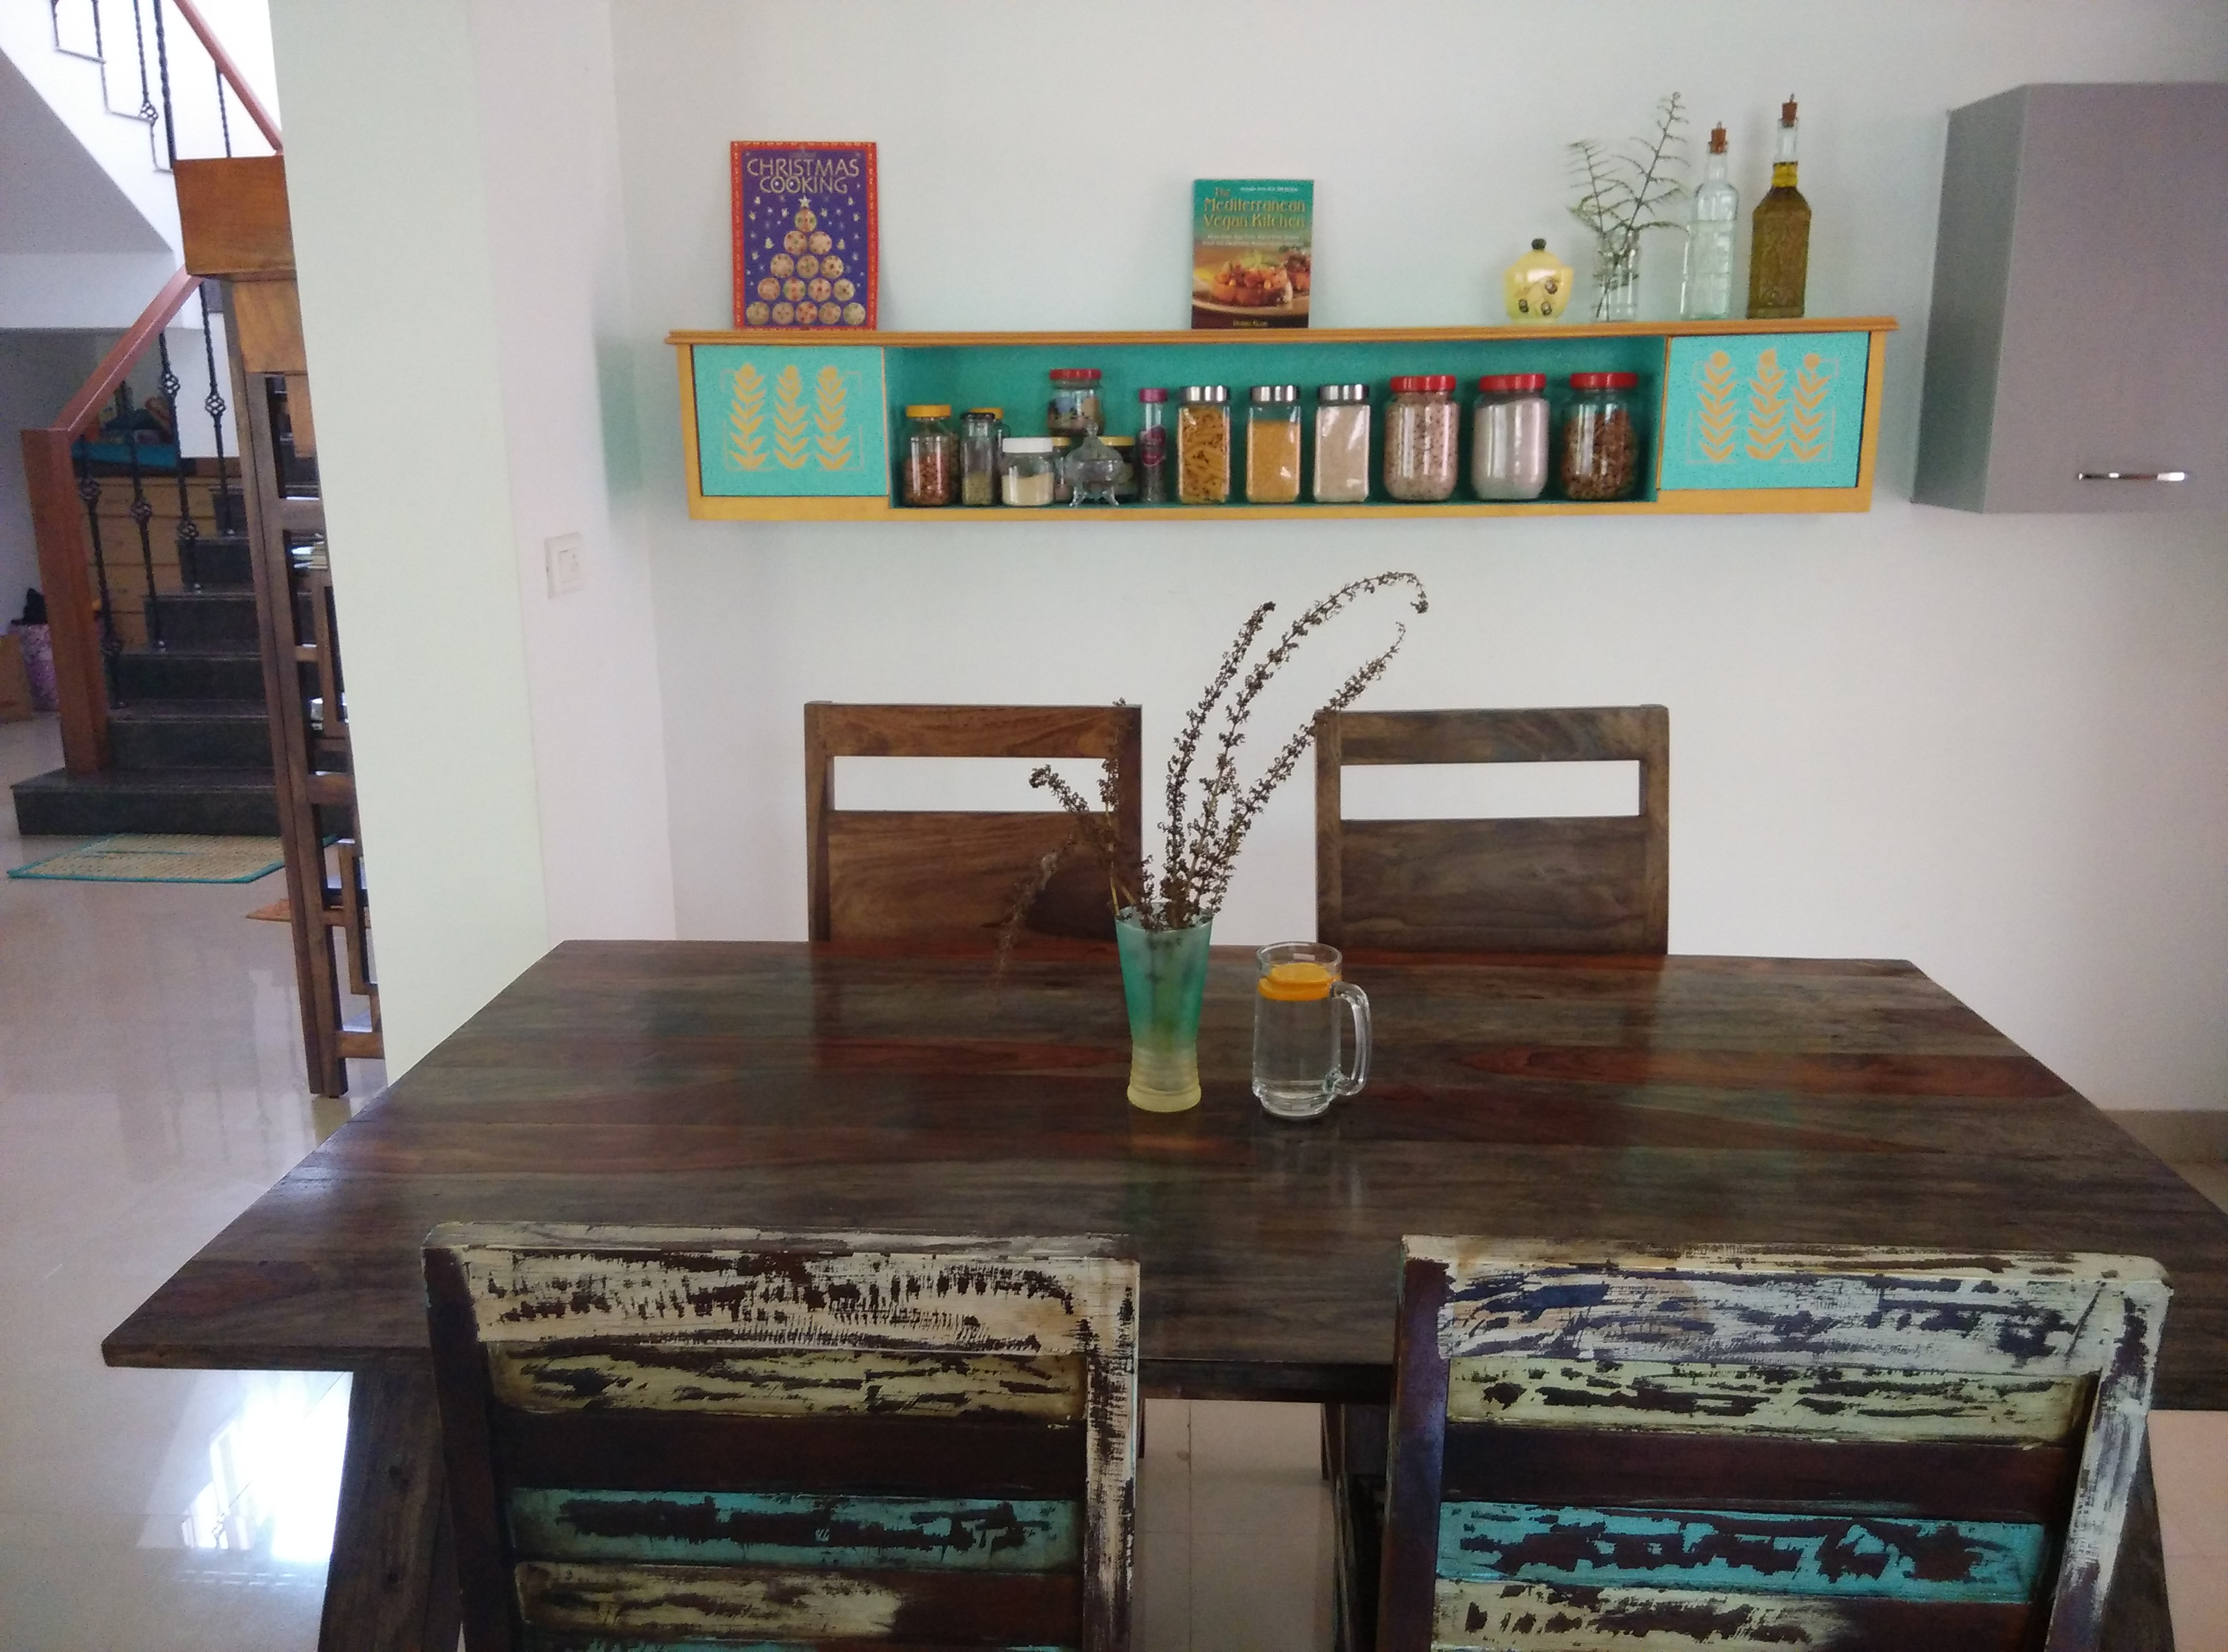 upcycled headboard wall shelf in turquoise and gold